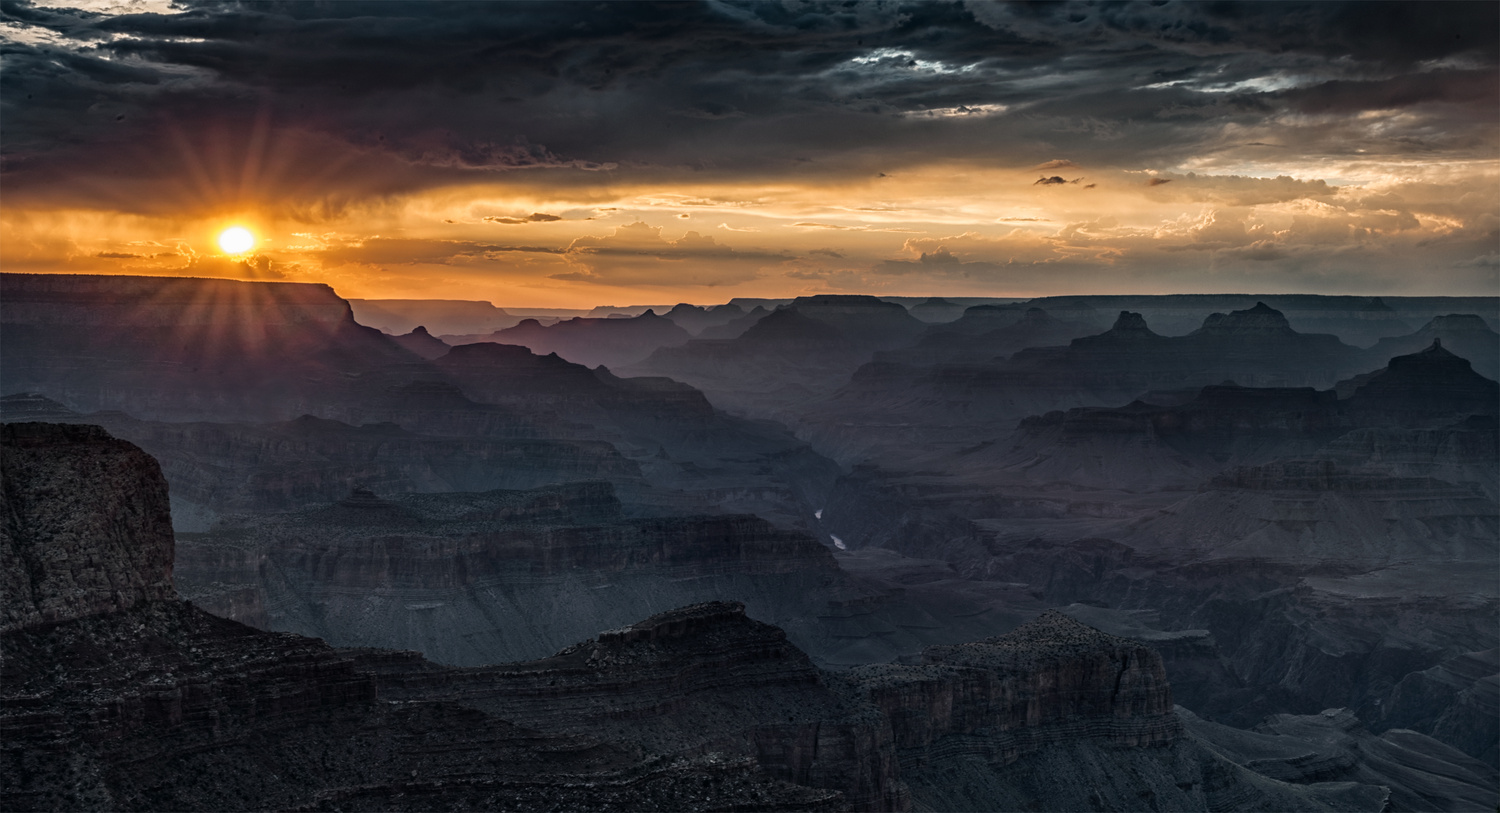 Sunset, Moran Point, Grand Canyon by John Dodson